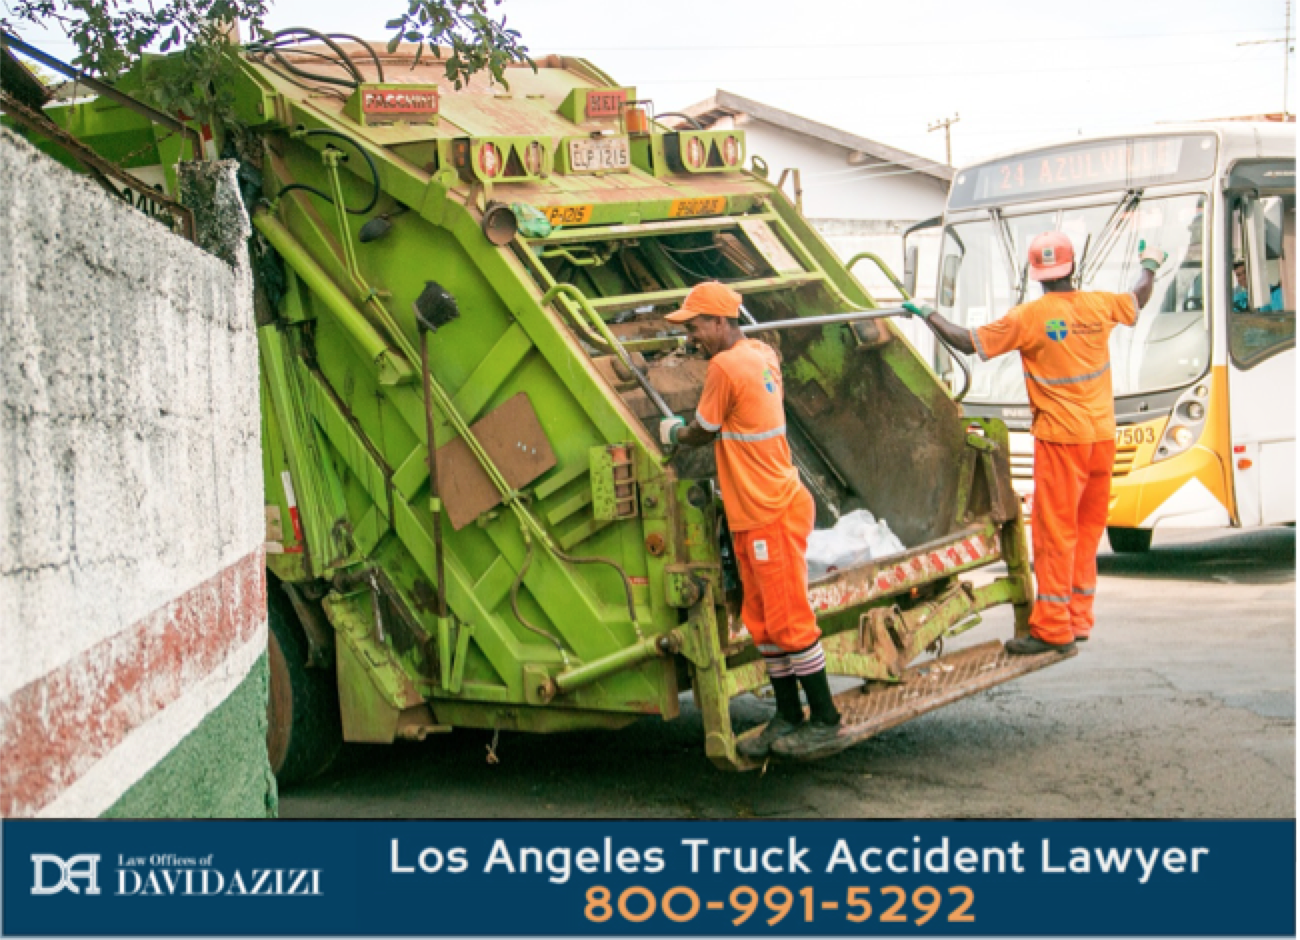 Rear Load Garbage Truck - Law Offices of David Azizi